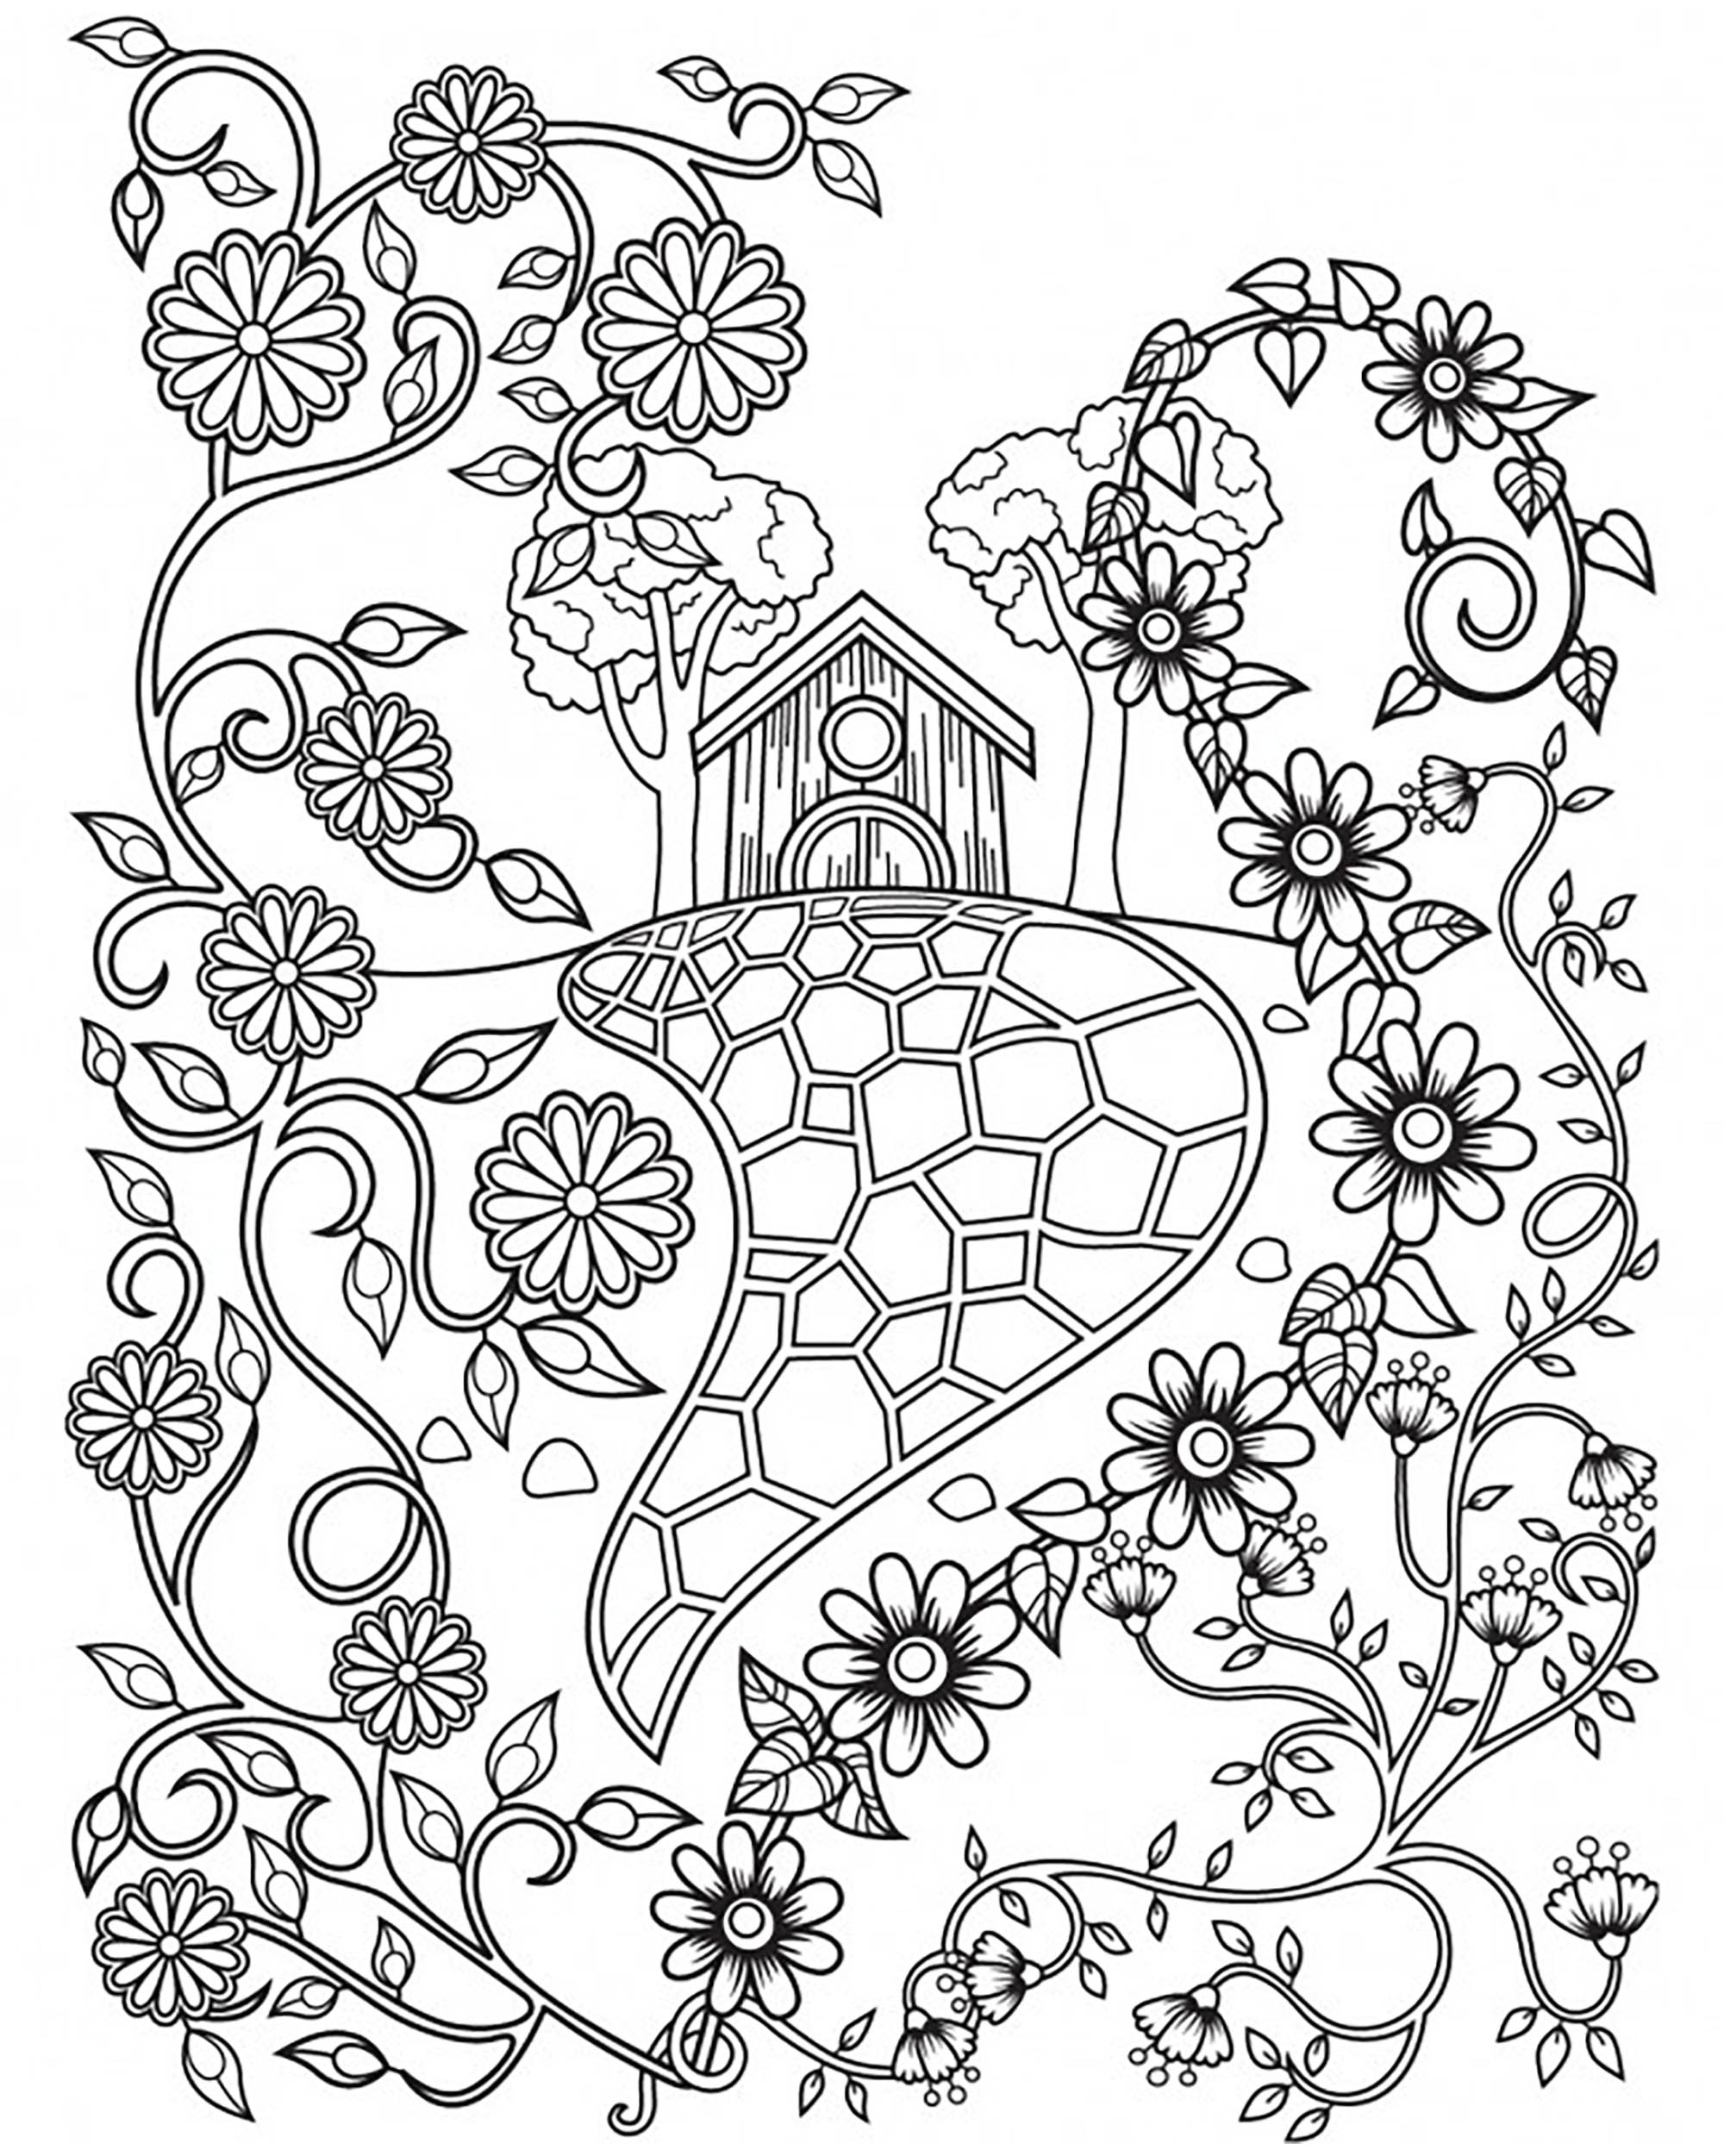 fairy tale coloring book pages - photo#28